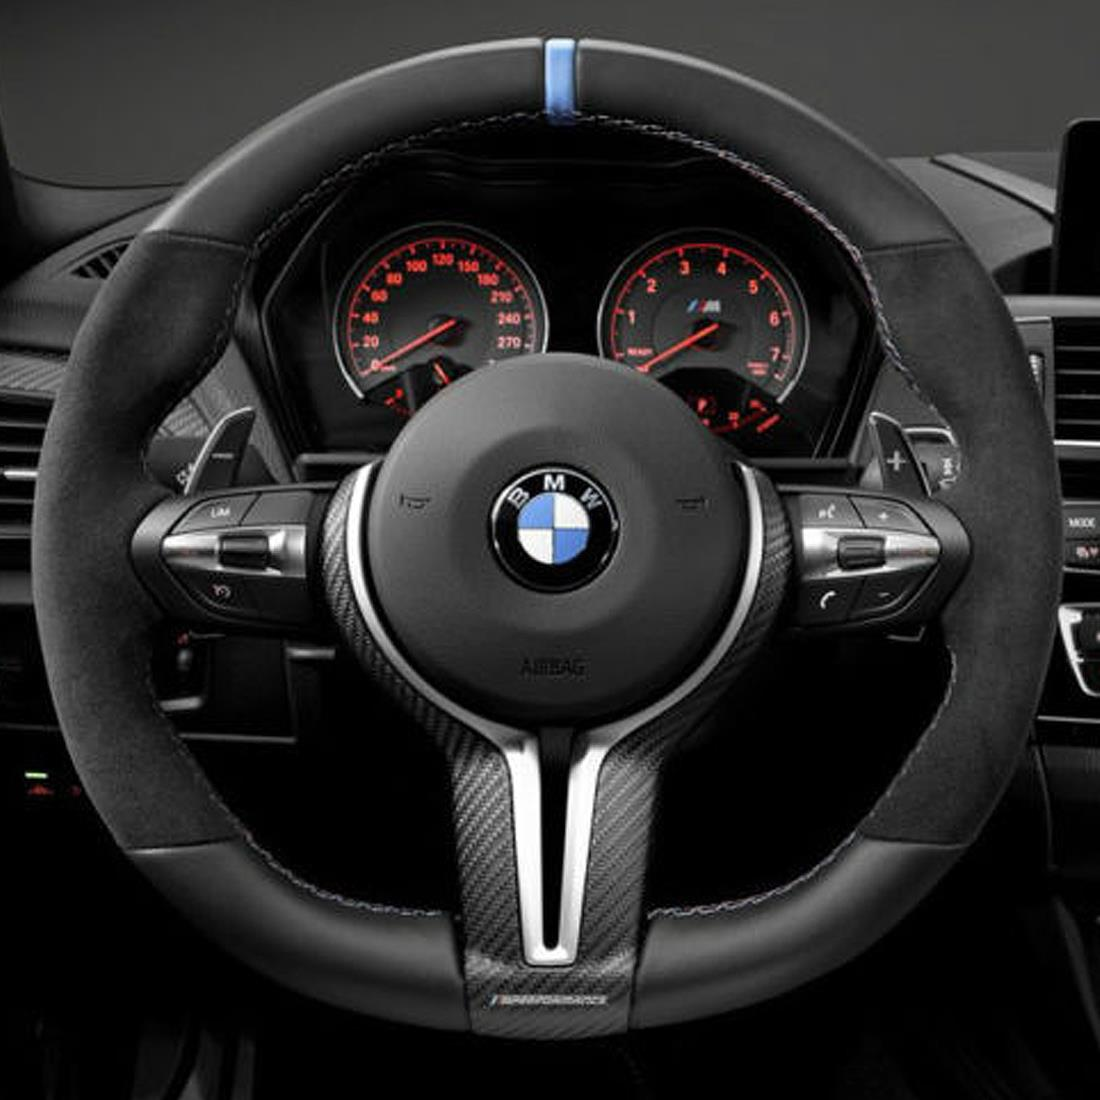 BMW Steering Wheel III Alcantara/ Leather With Carbon Fiber Cover